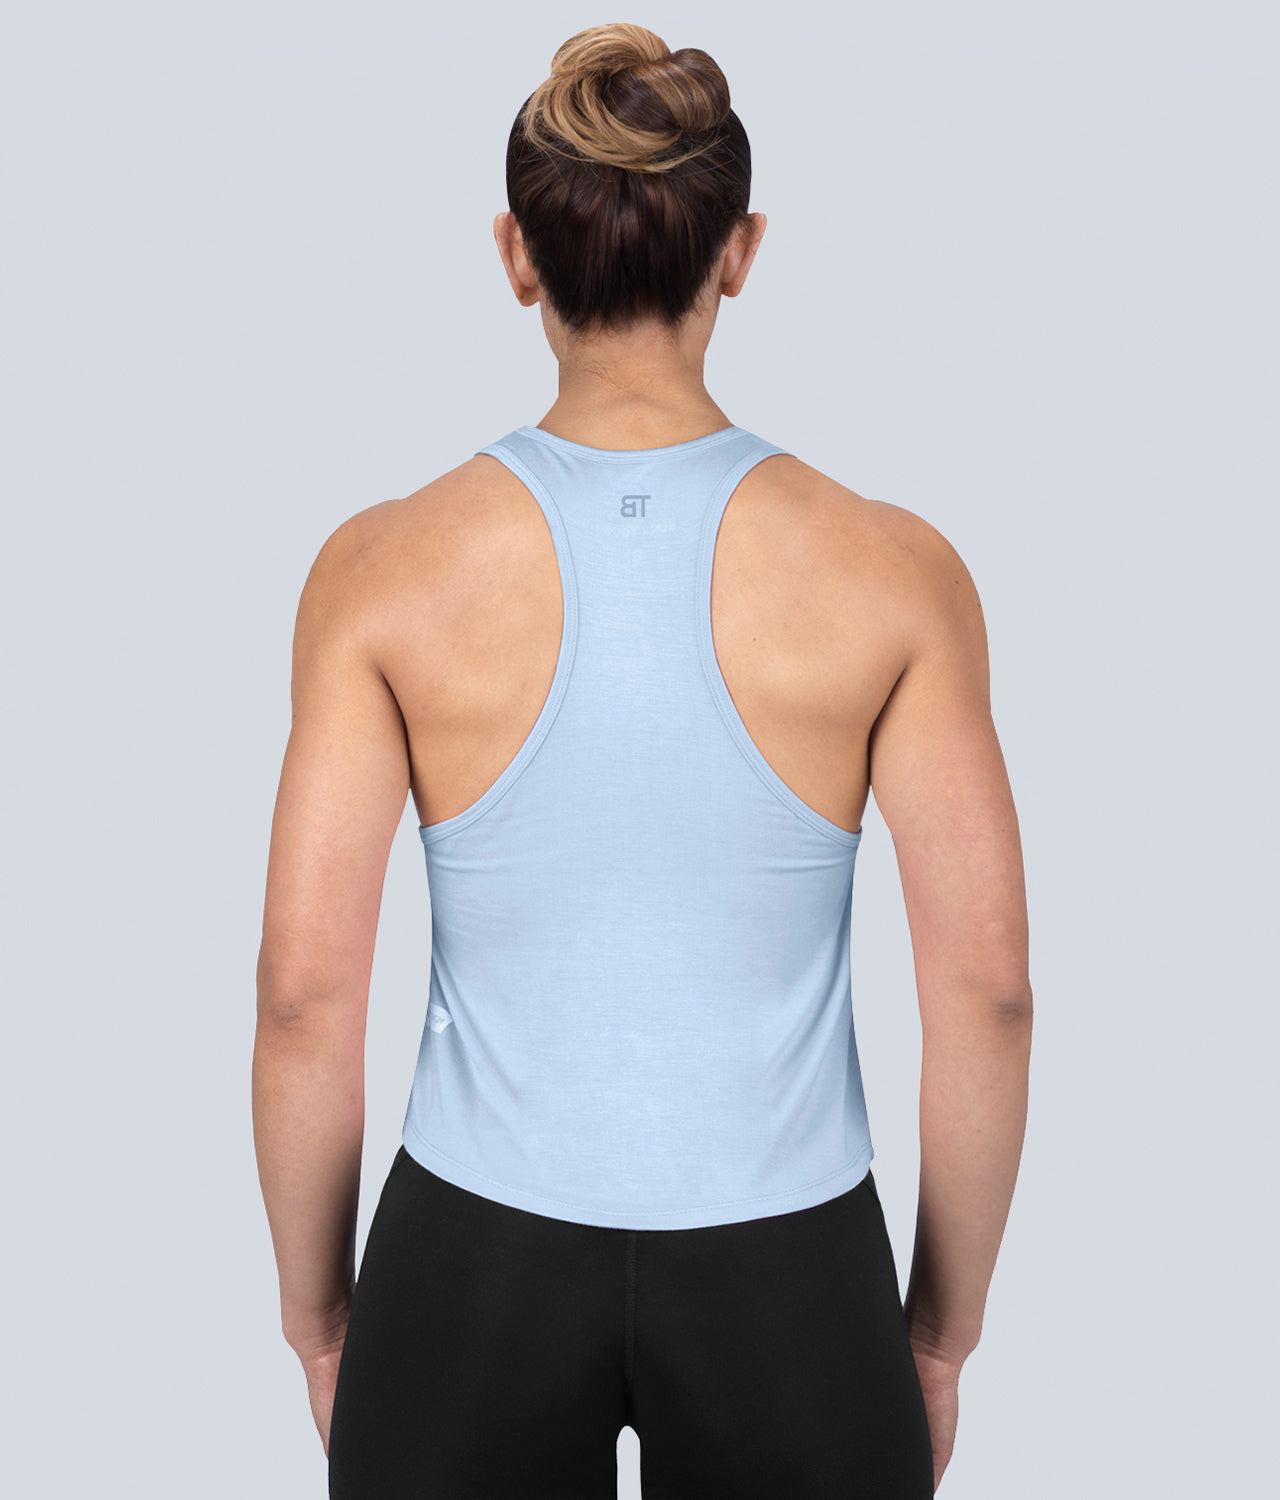 Born Tough Limitless Lightweight Soft Material Blue Sheer Gym Workout Tank Top for Women